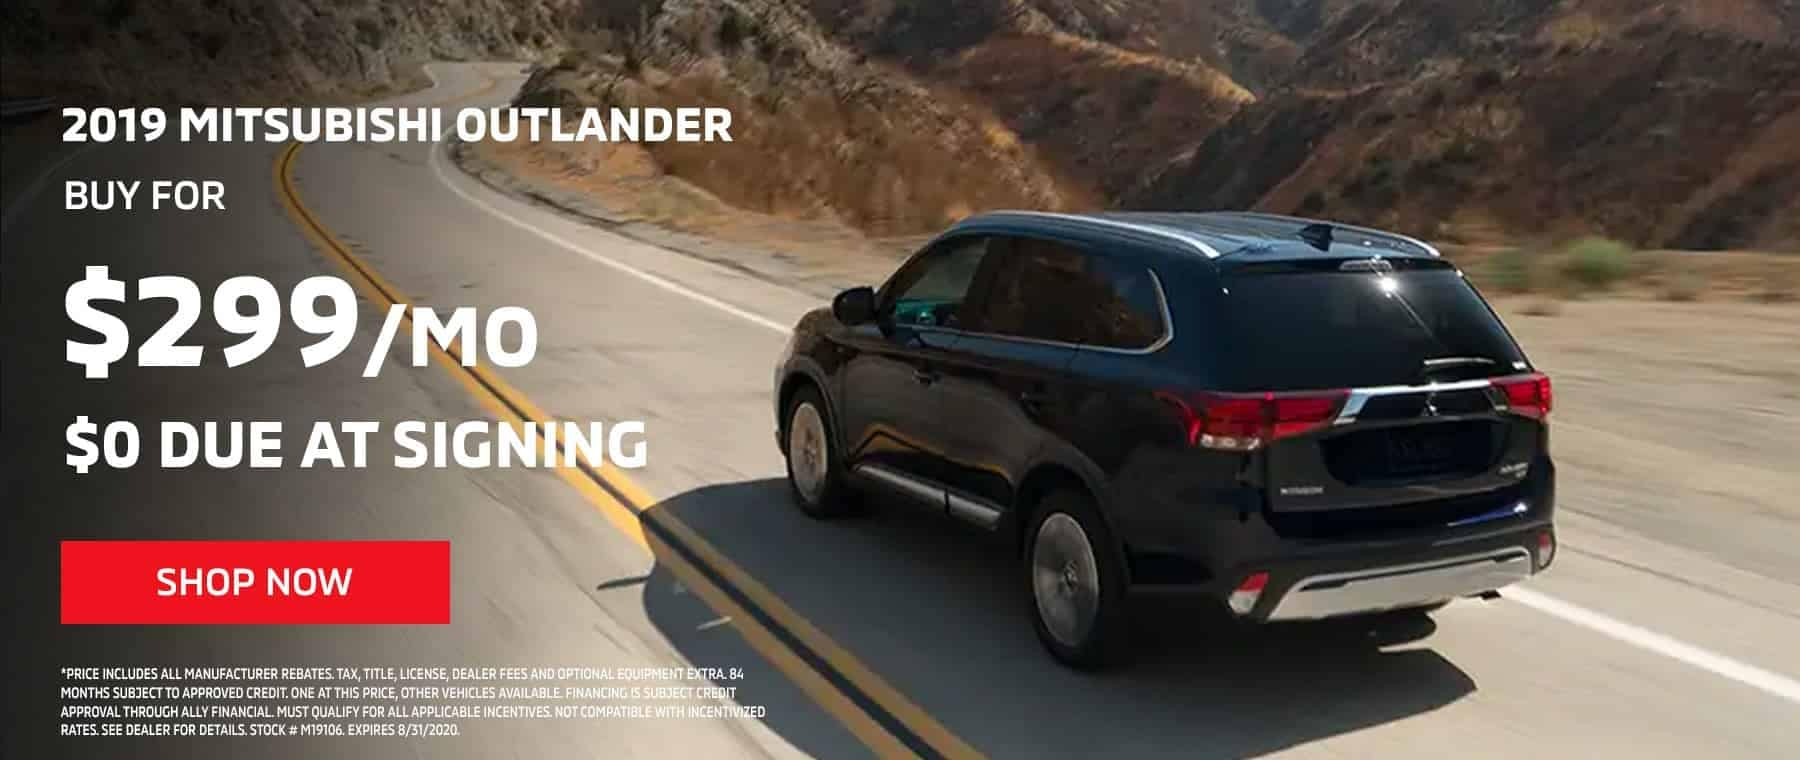 2019 OUTLANDER – AS LOW AS $299 PER MONTH, $0 DOWN